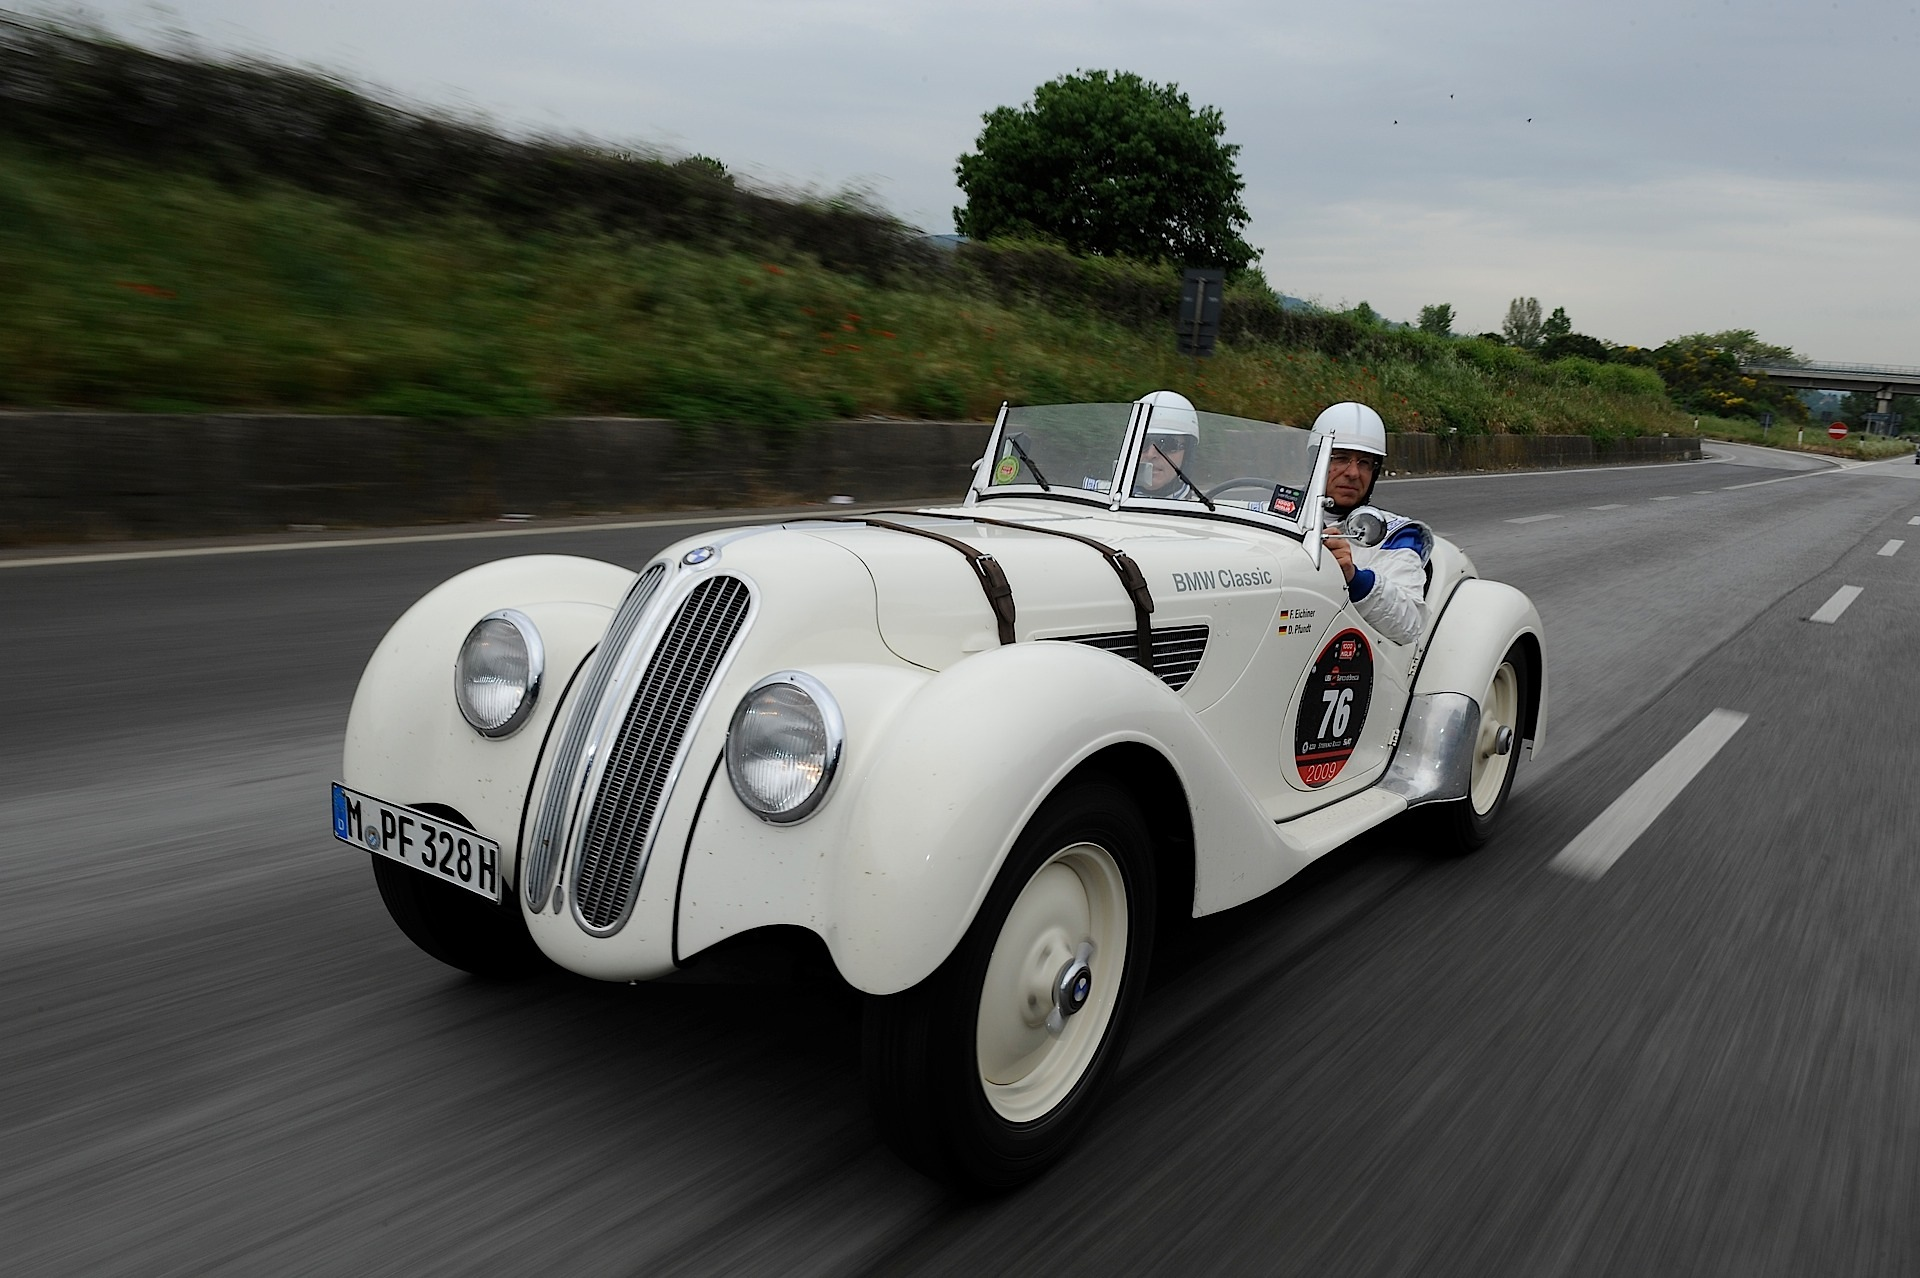 Bmw 328 Gearbox Replica Now Available Through Bmw Classic